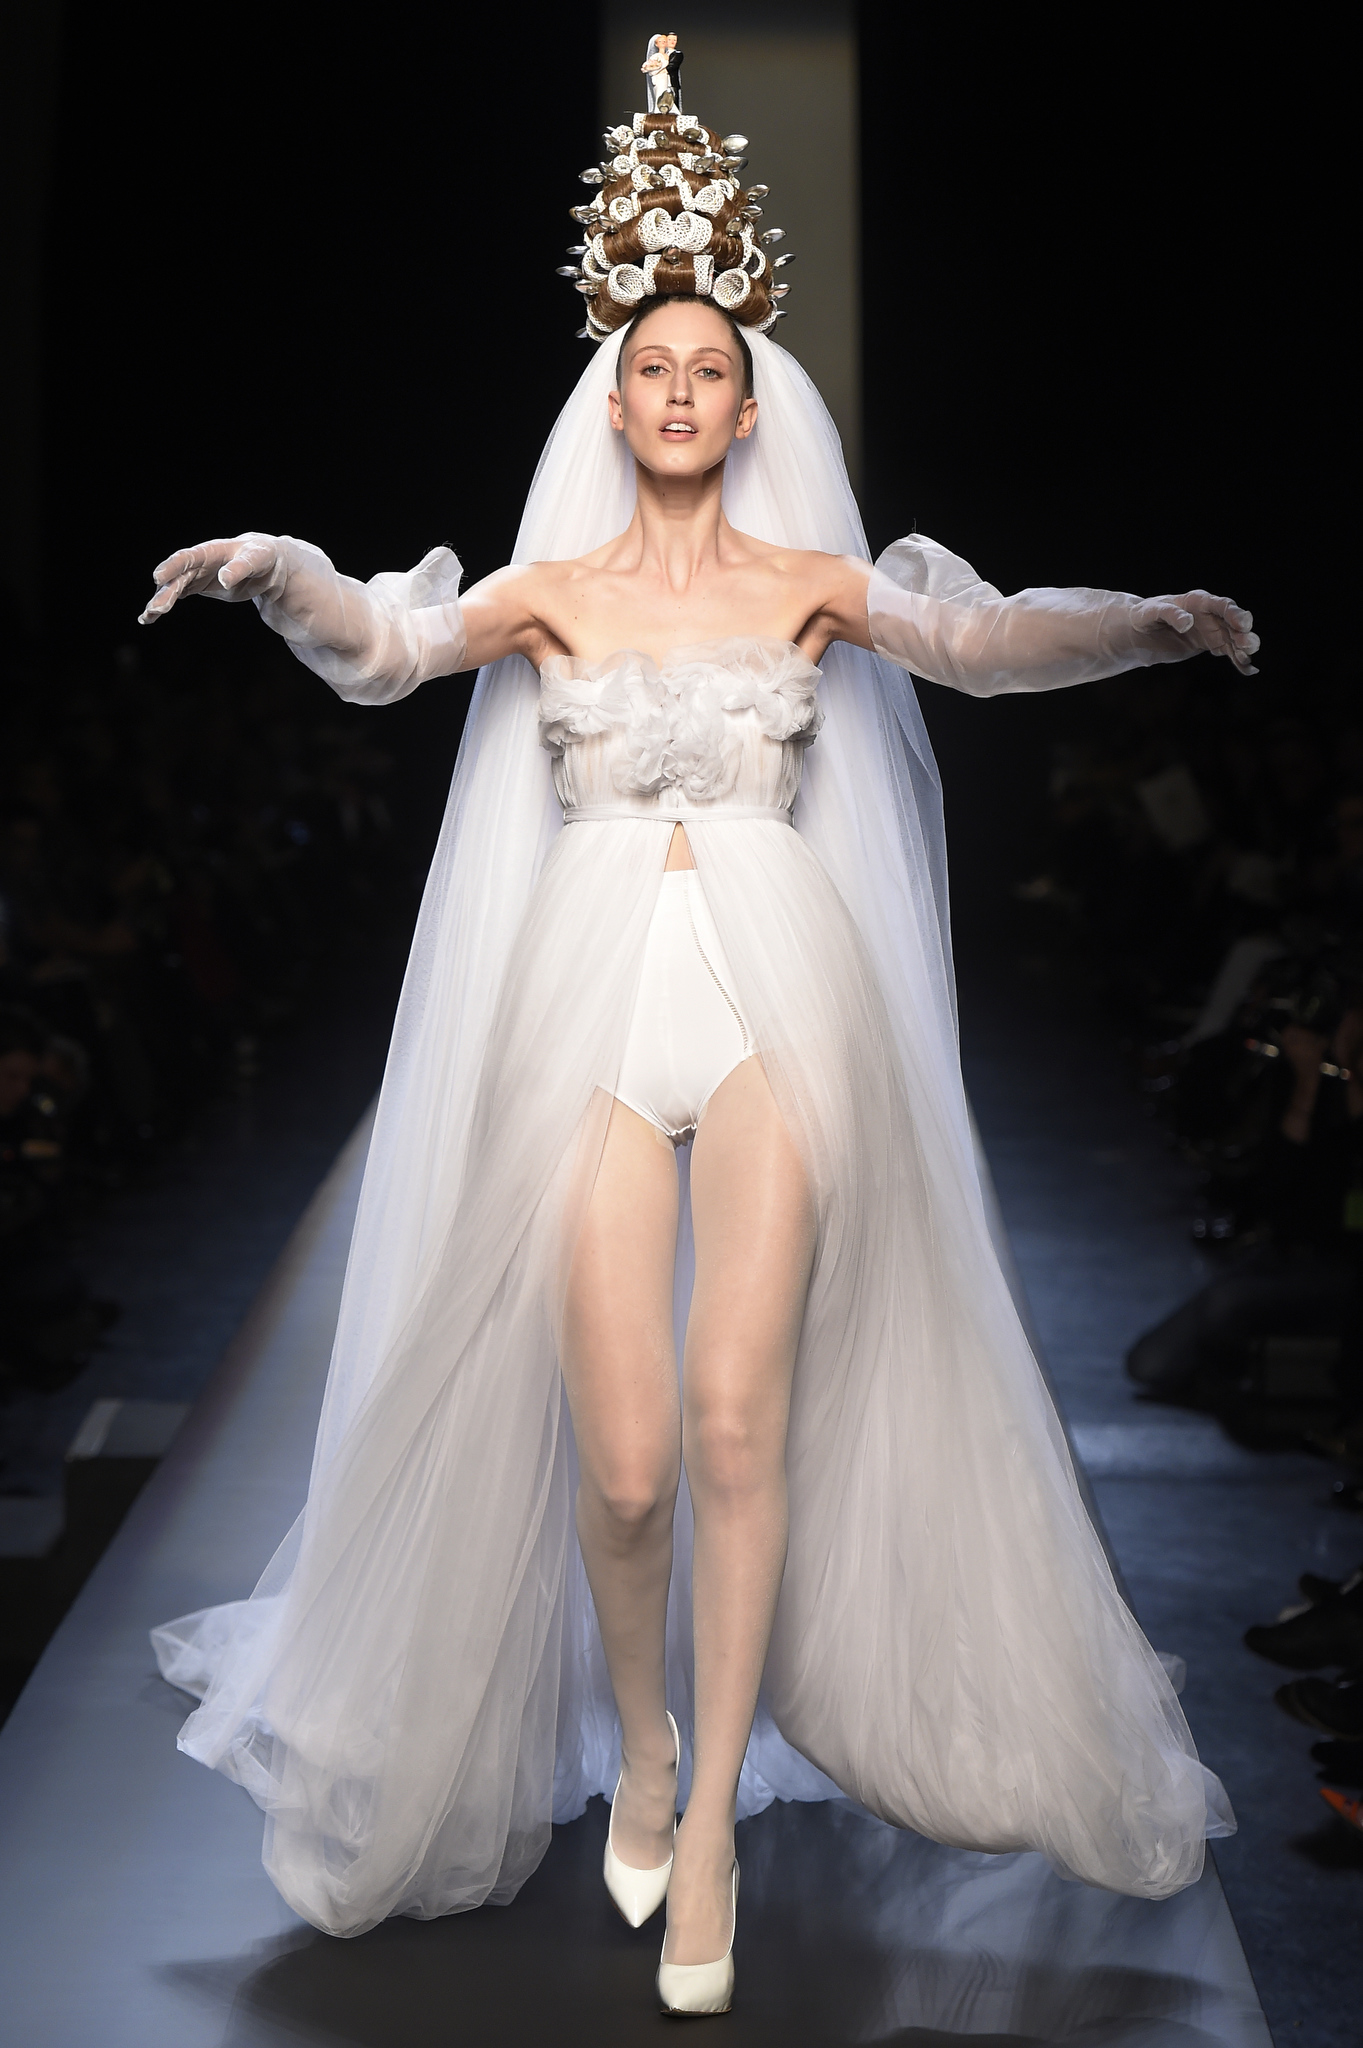 A model on the runway at Jean Paul Gaultier's spring 2015 haute couture show.